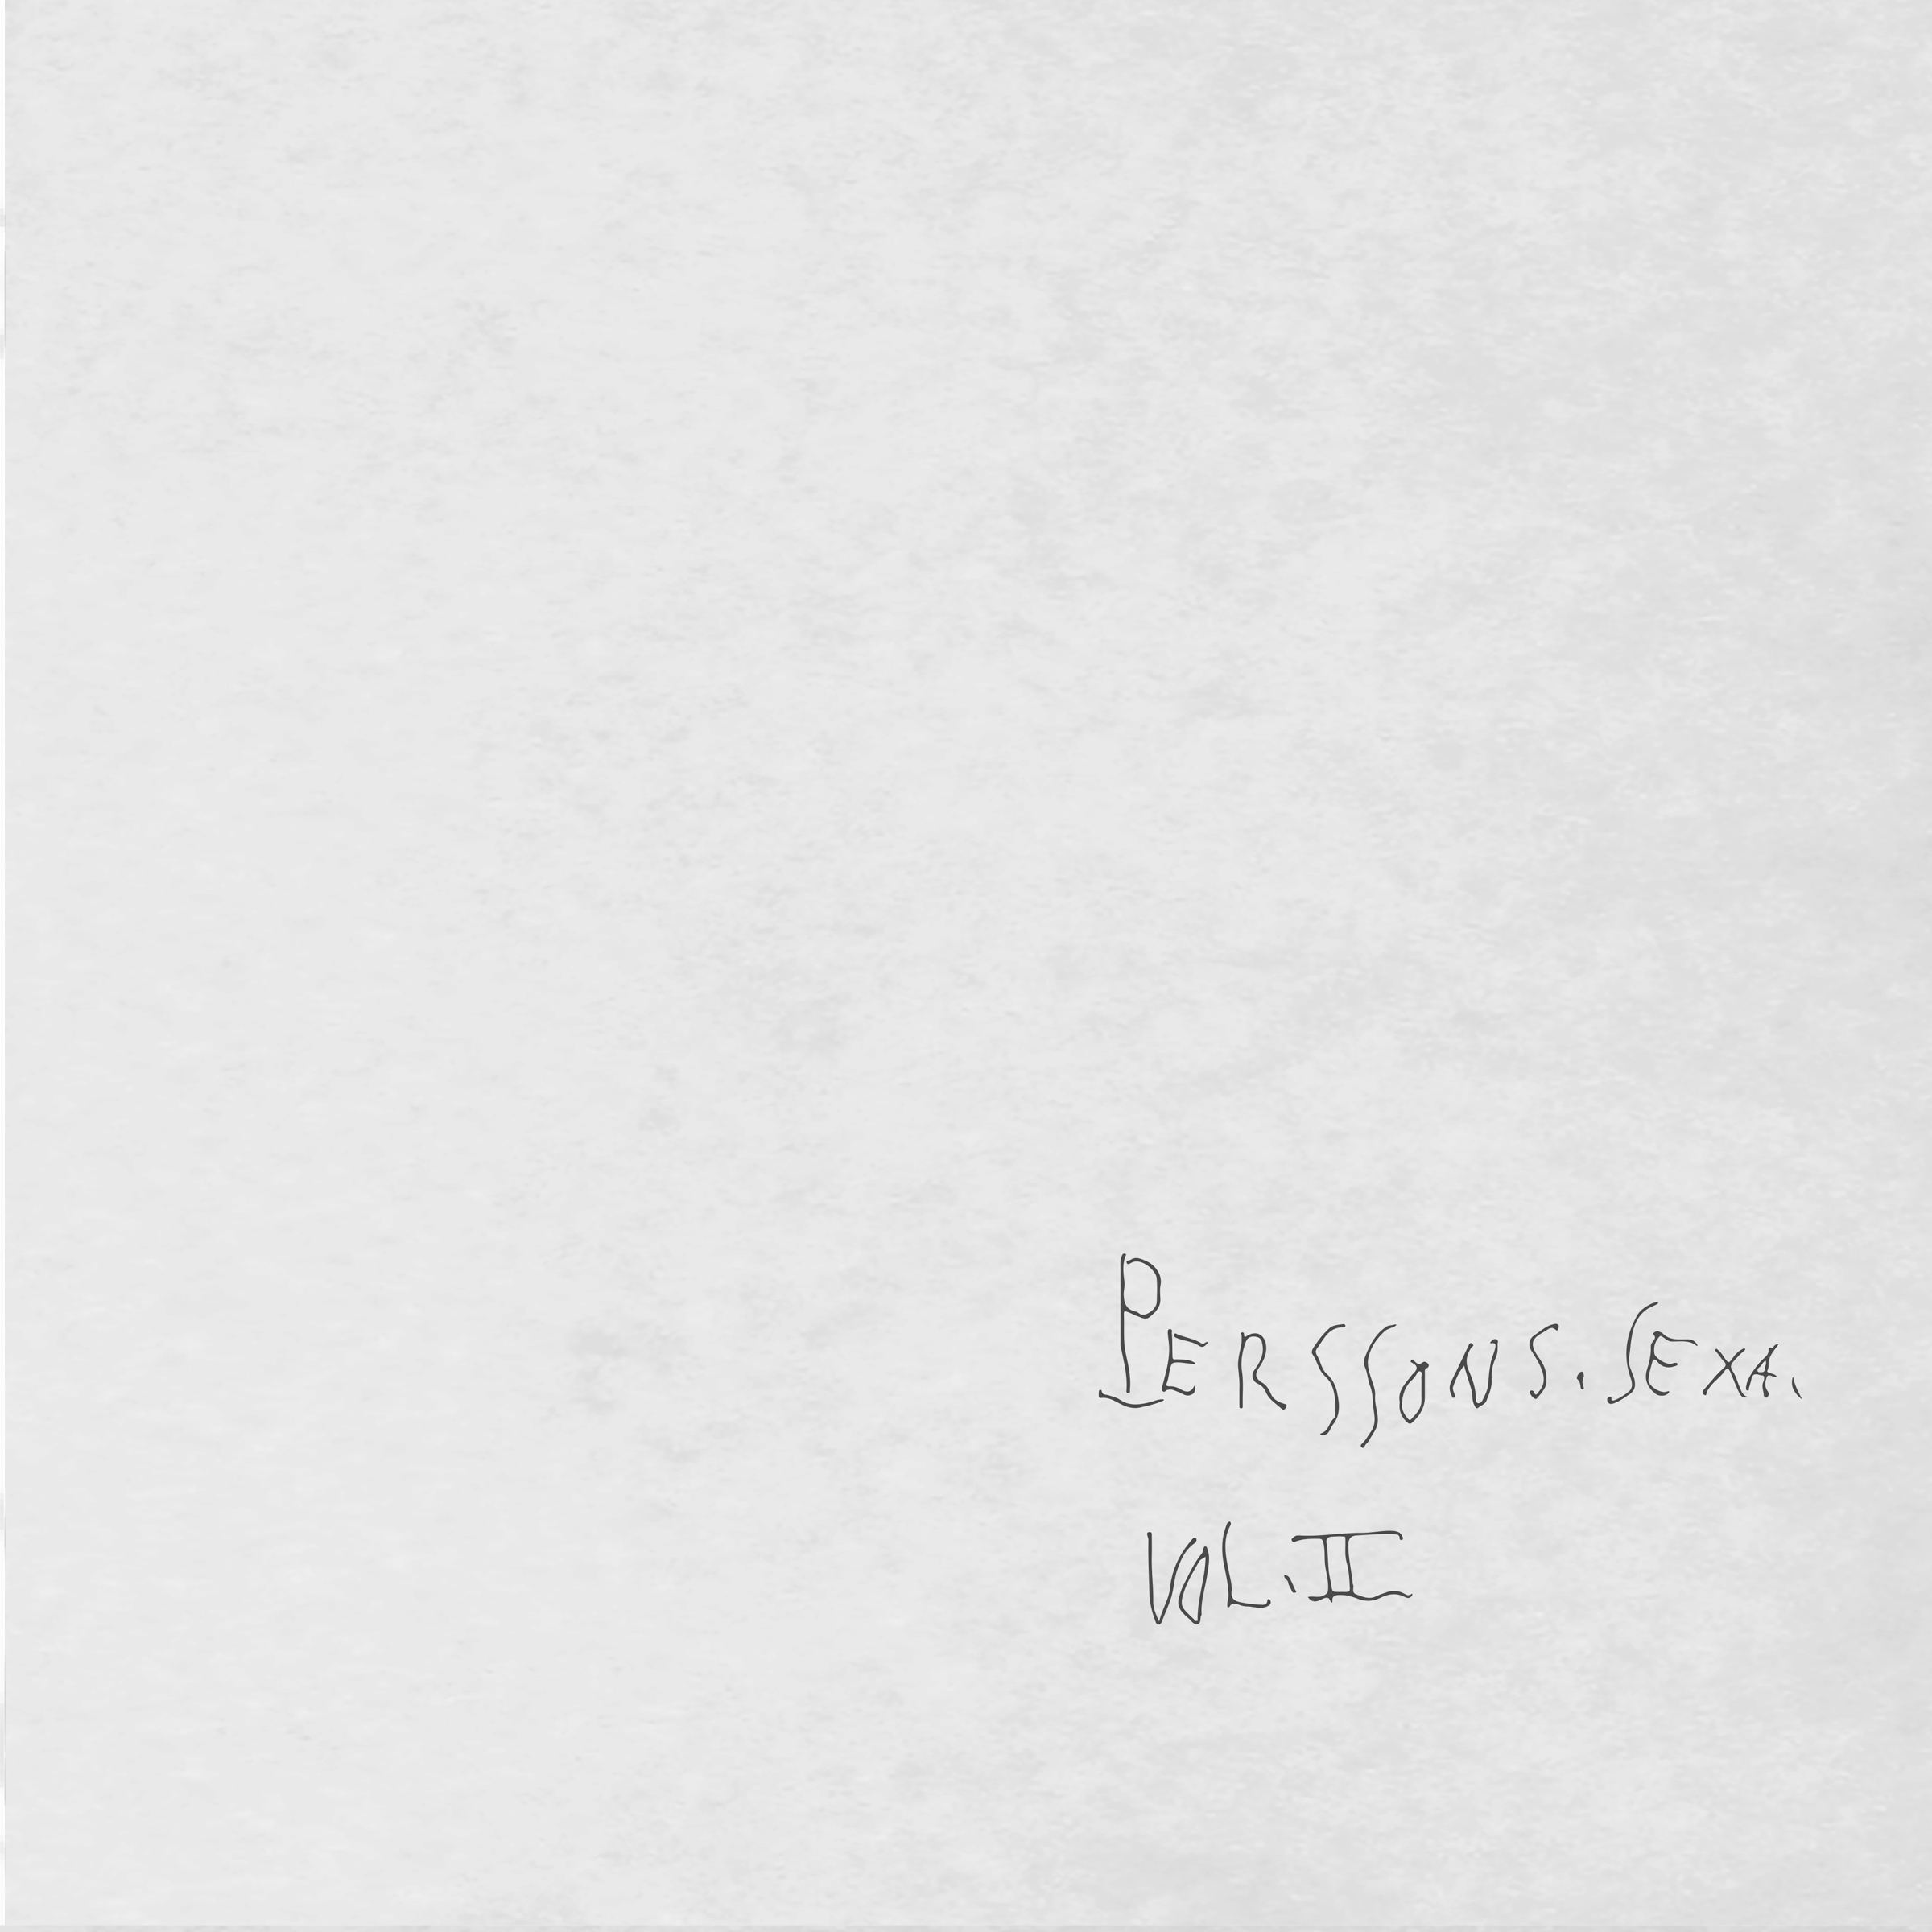 Perssons Sexa - Vol II